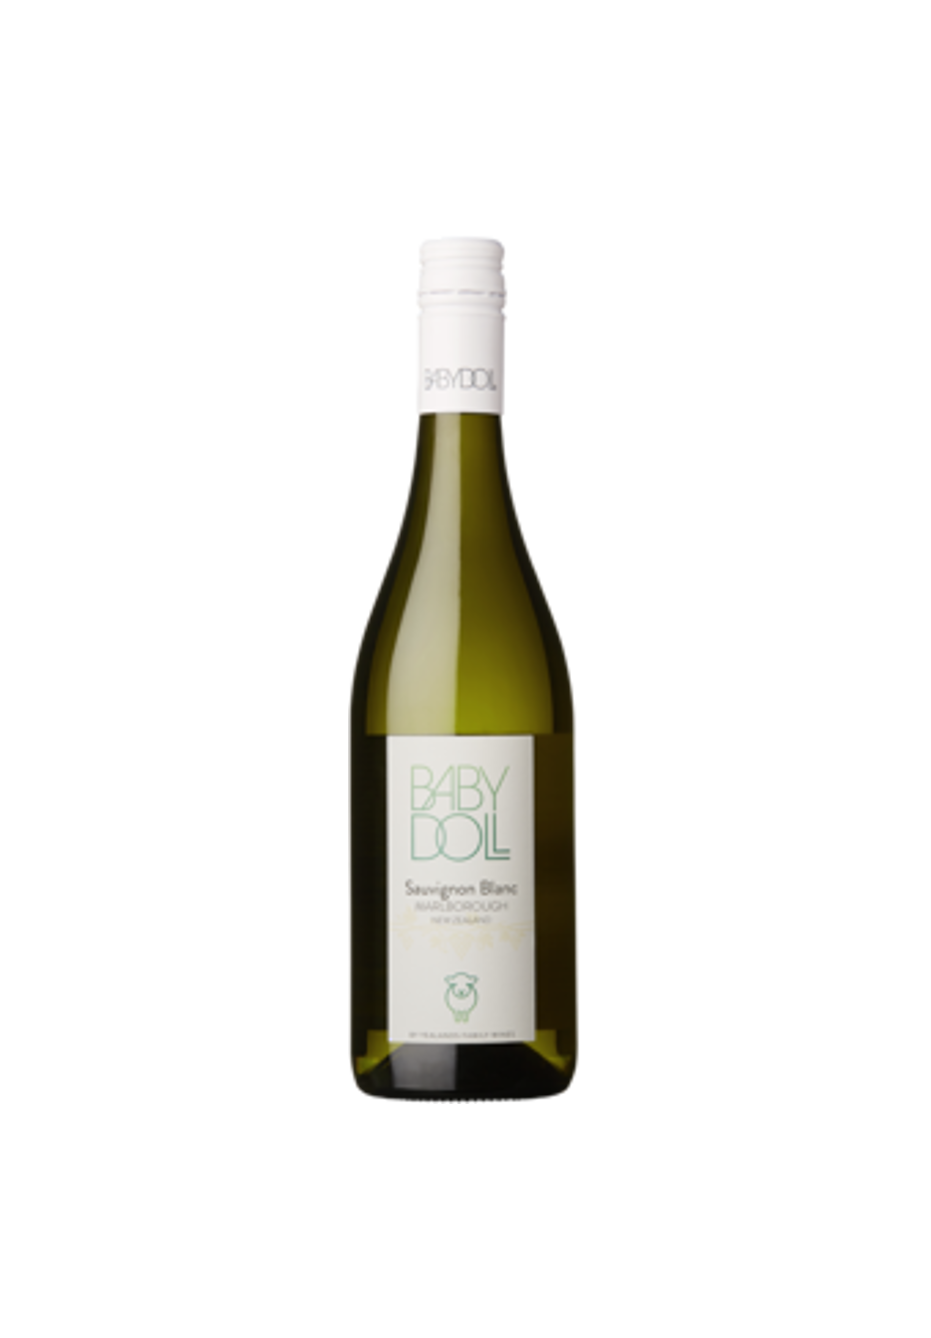 Baby Doll Marlborough Sauvignon Blanc 2017